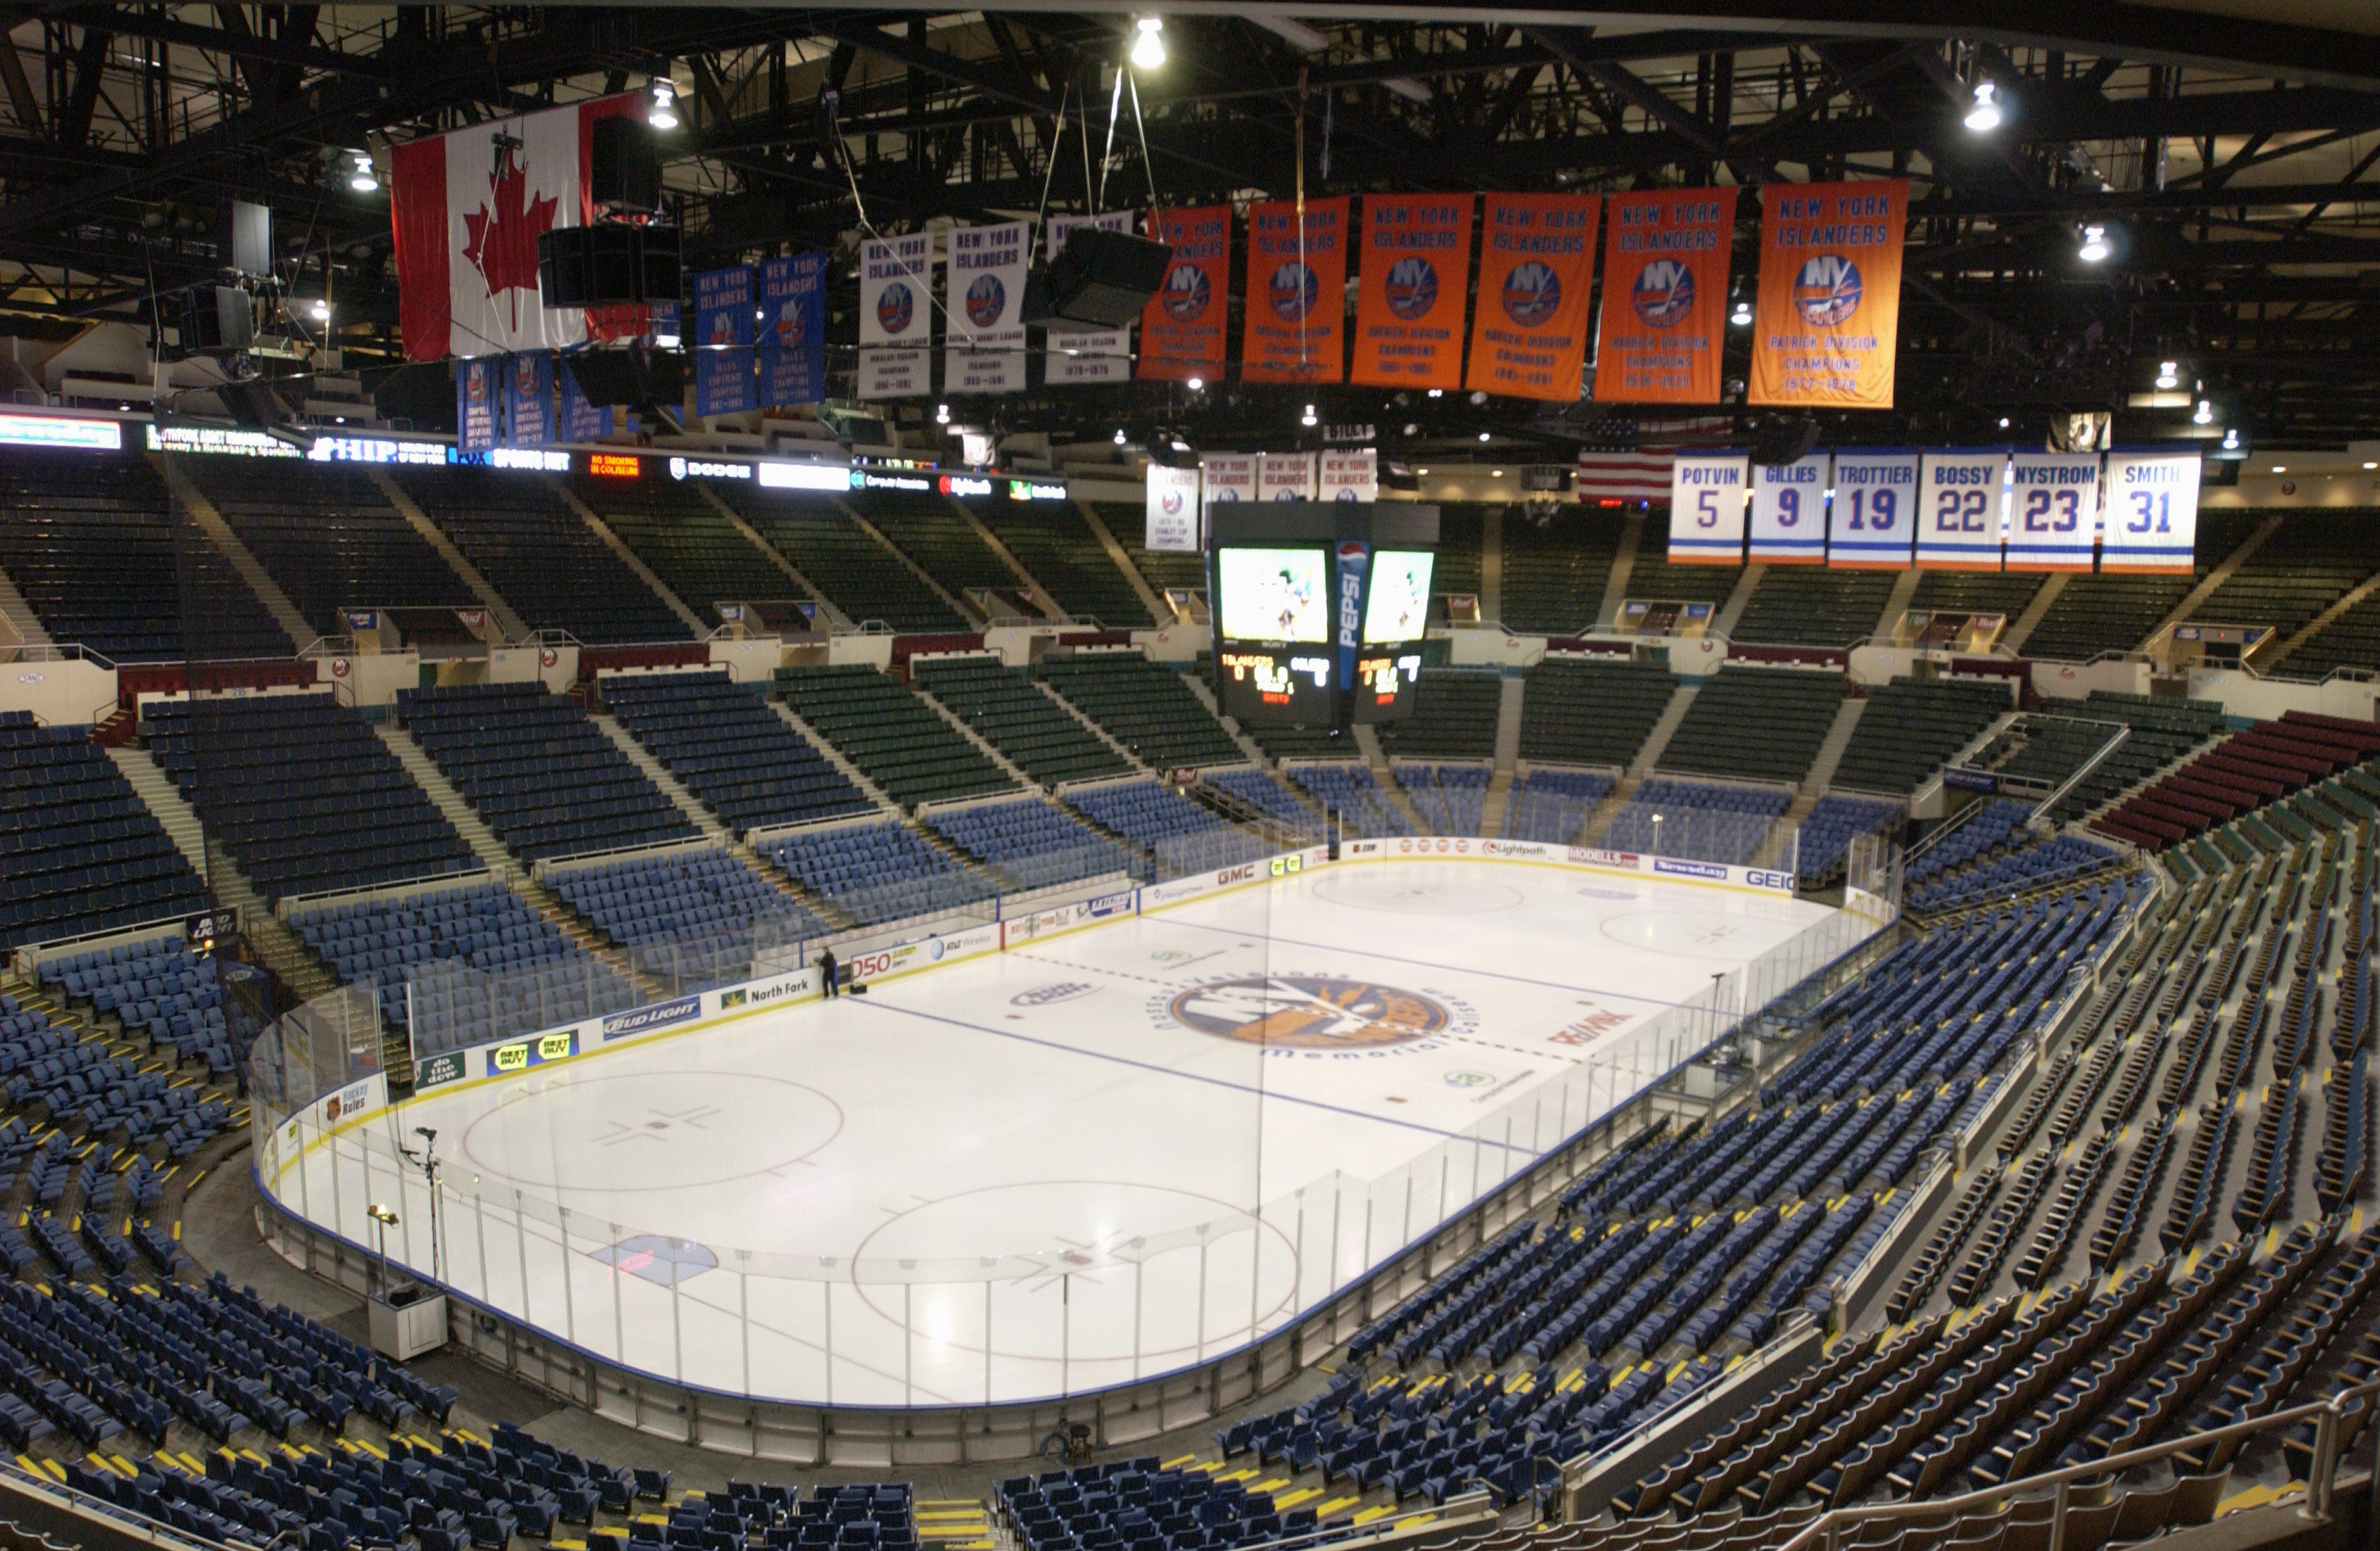 UNIONDALE, NY - NOVEMBER 8: Interior view of the Nassau Collisium, home of the New York Islanders taken on November 8, 2002 in Uniondale, New York (Photo by Ezra Shaw/Getty Images)